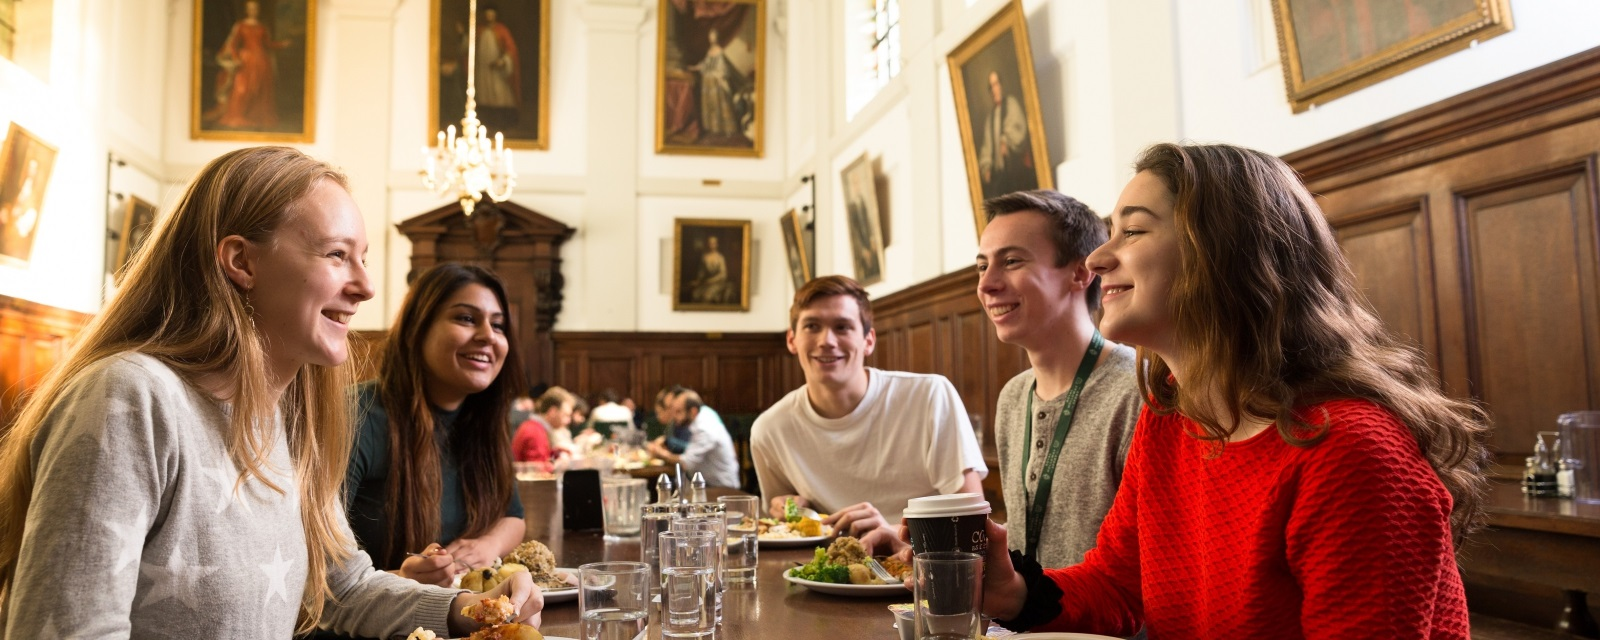 Students in the Dining Hall at The Queen's College